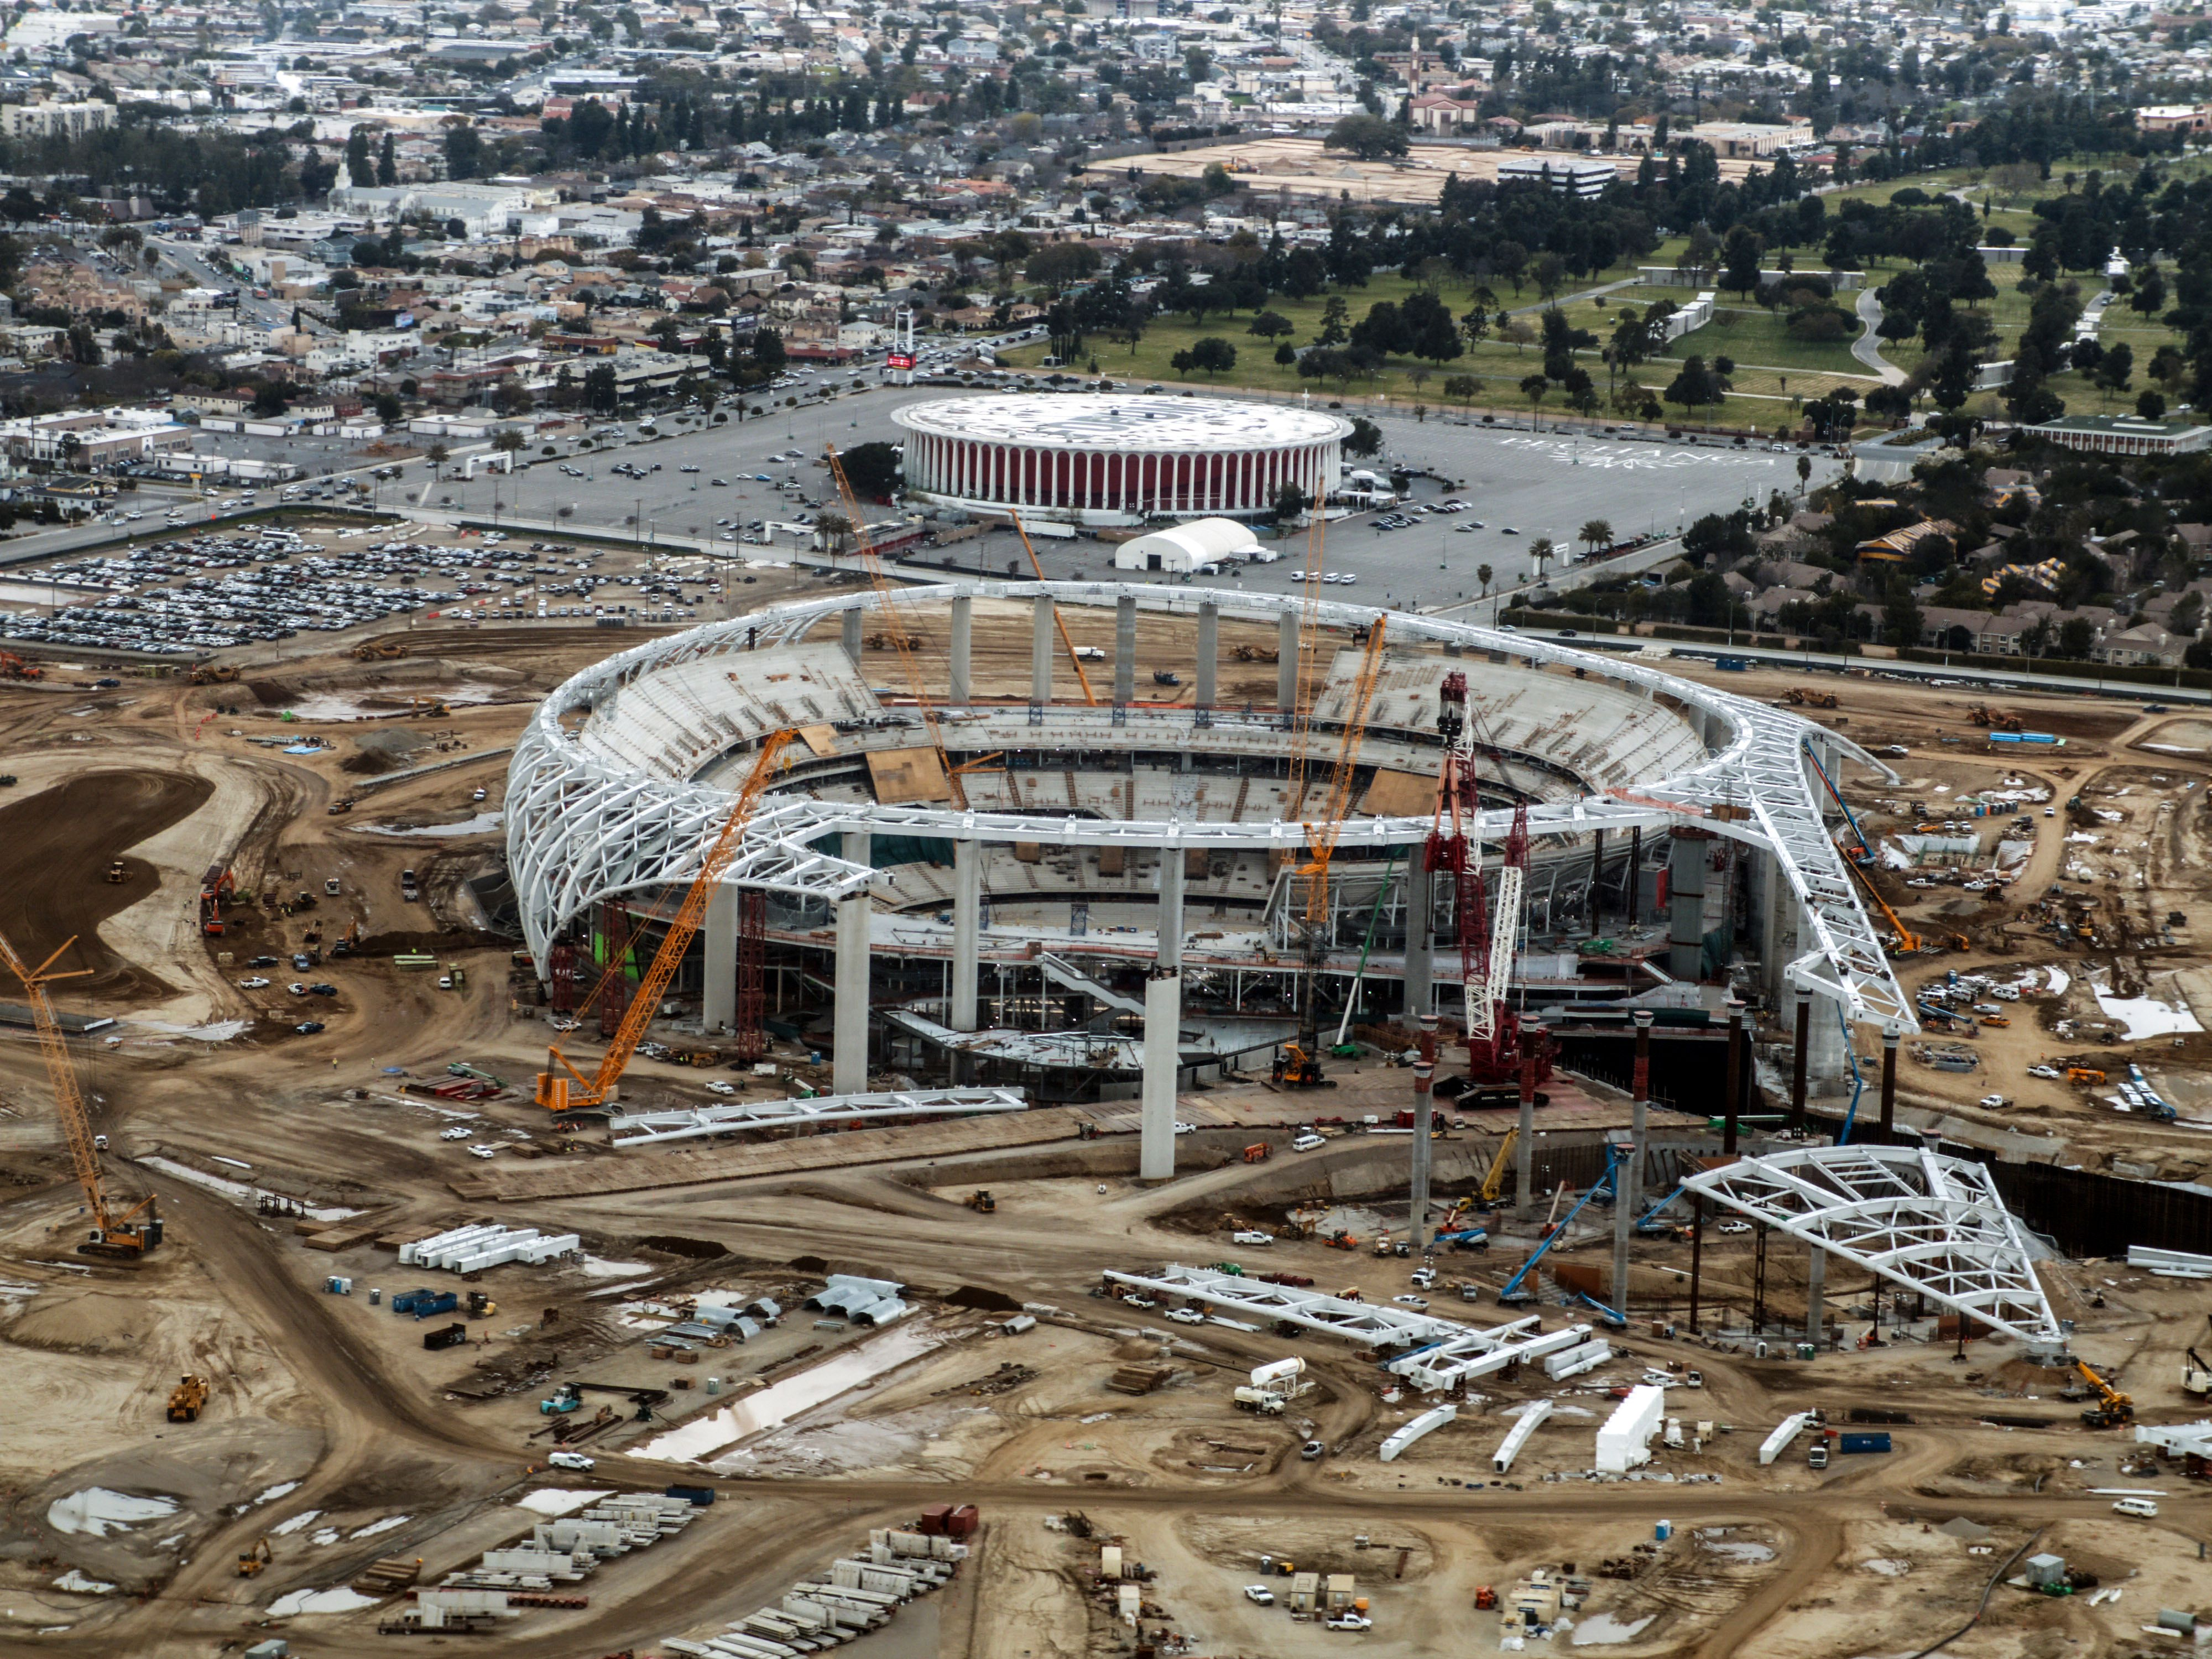 report rams frustrated with chargers contribution to new stadium fox 5 san diego report rams frustrated with chargers contribution to new stadium fox 5 san diego